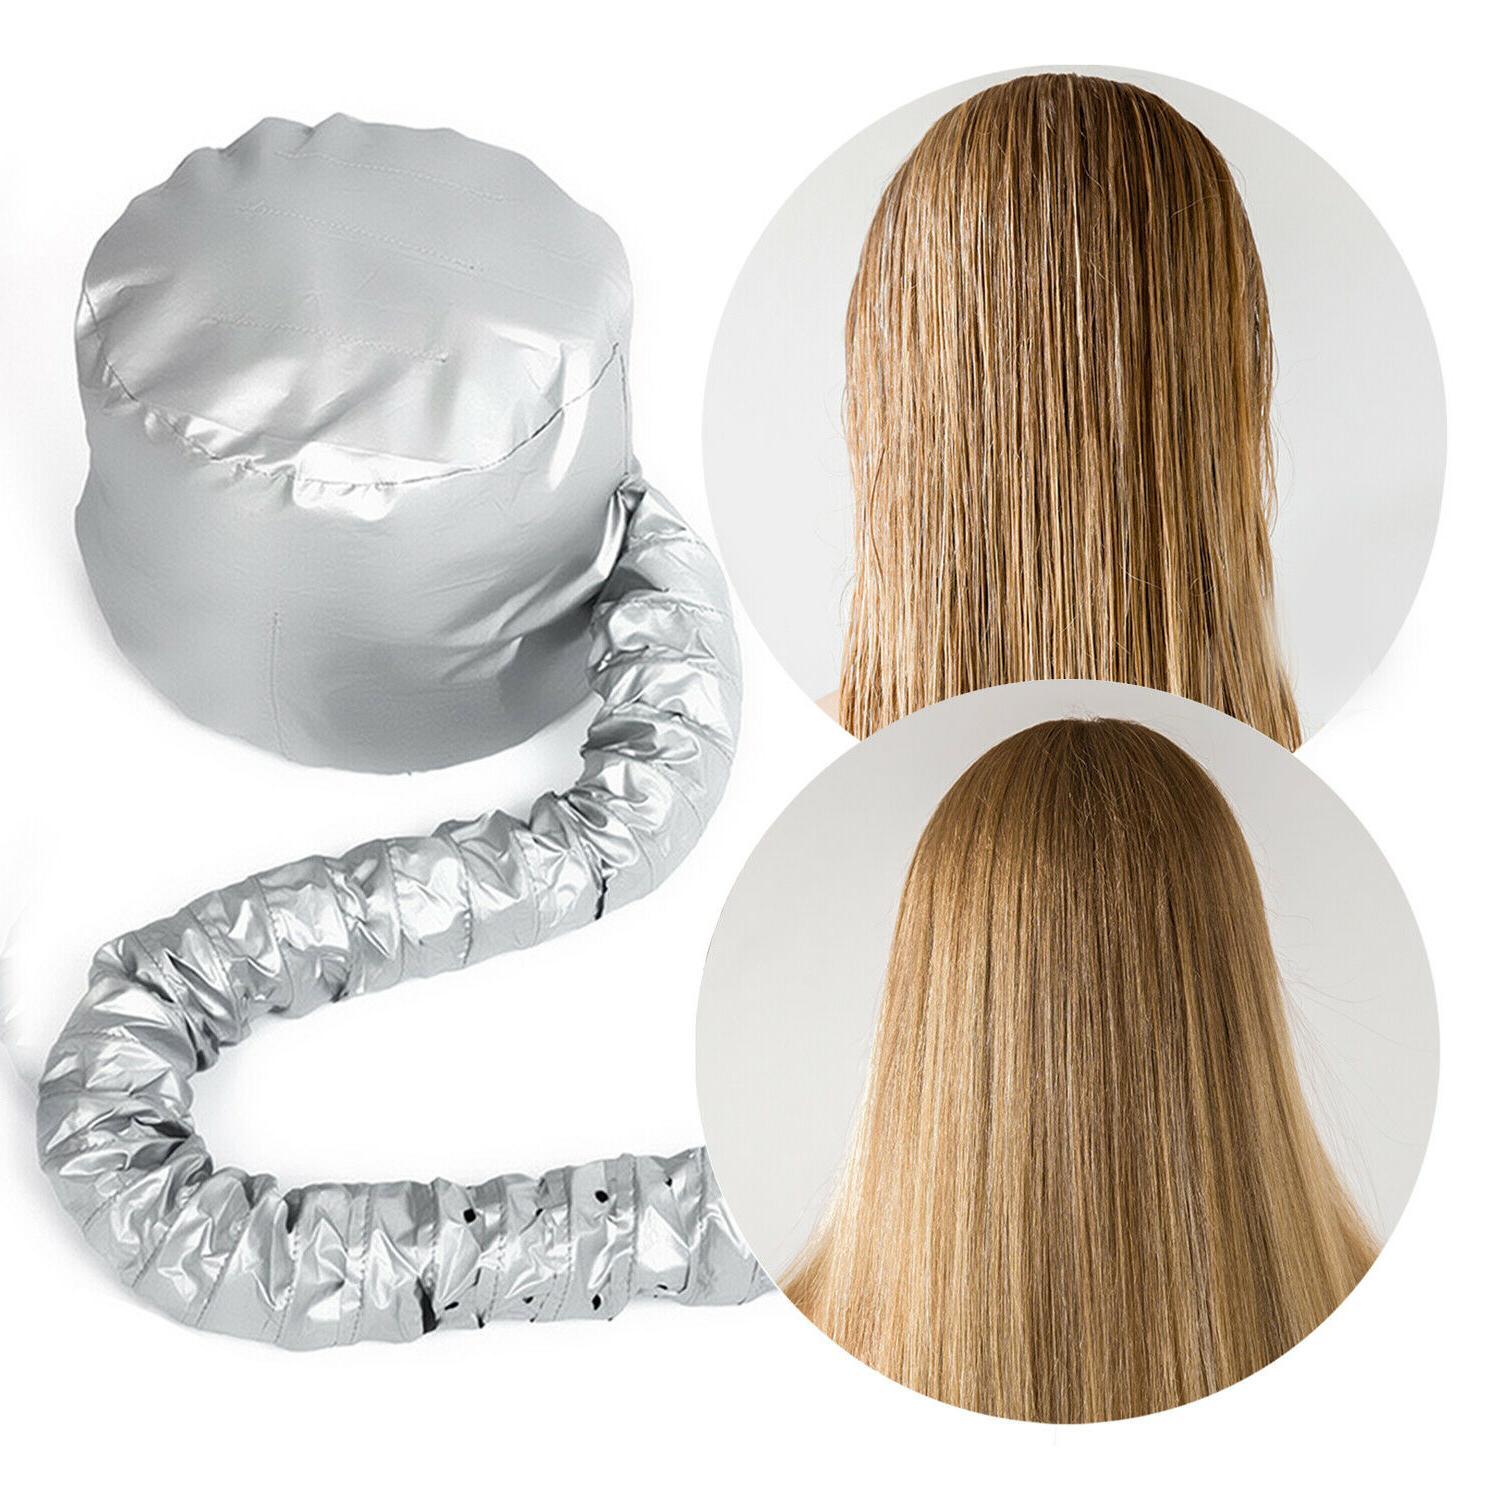 Professional Bonnet for Hair Blow Dryer Drying Cap Hat for Home/Travel